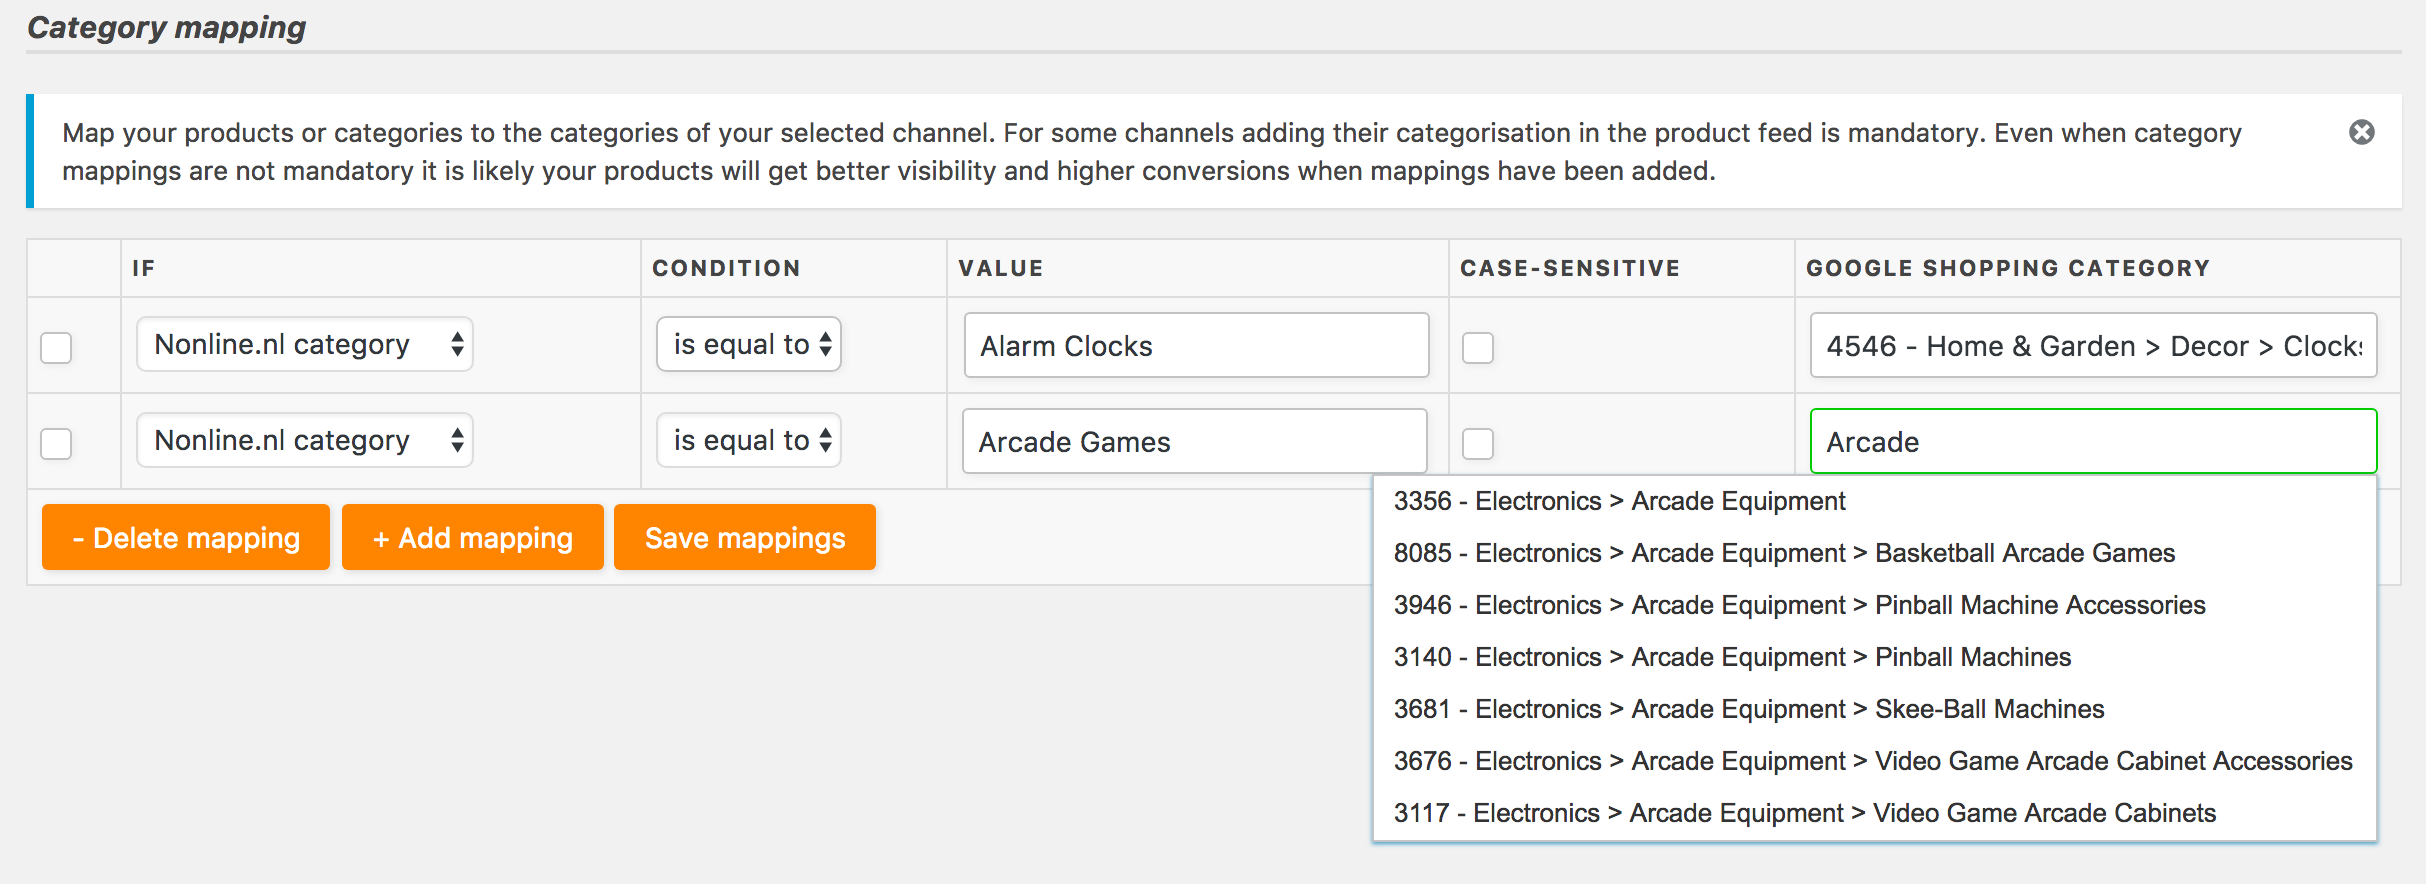 Map your product categories to those of the channels you are creating feeds for (for example Google shopping)